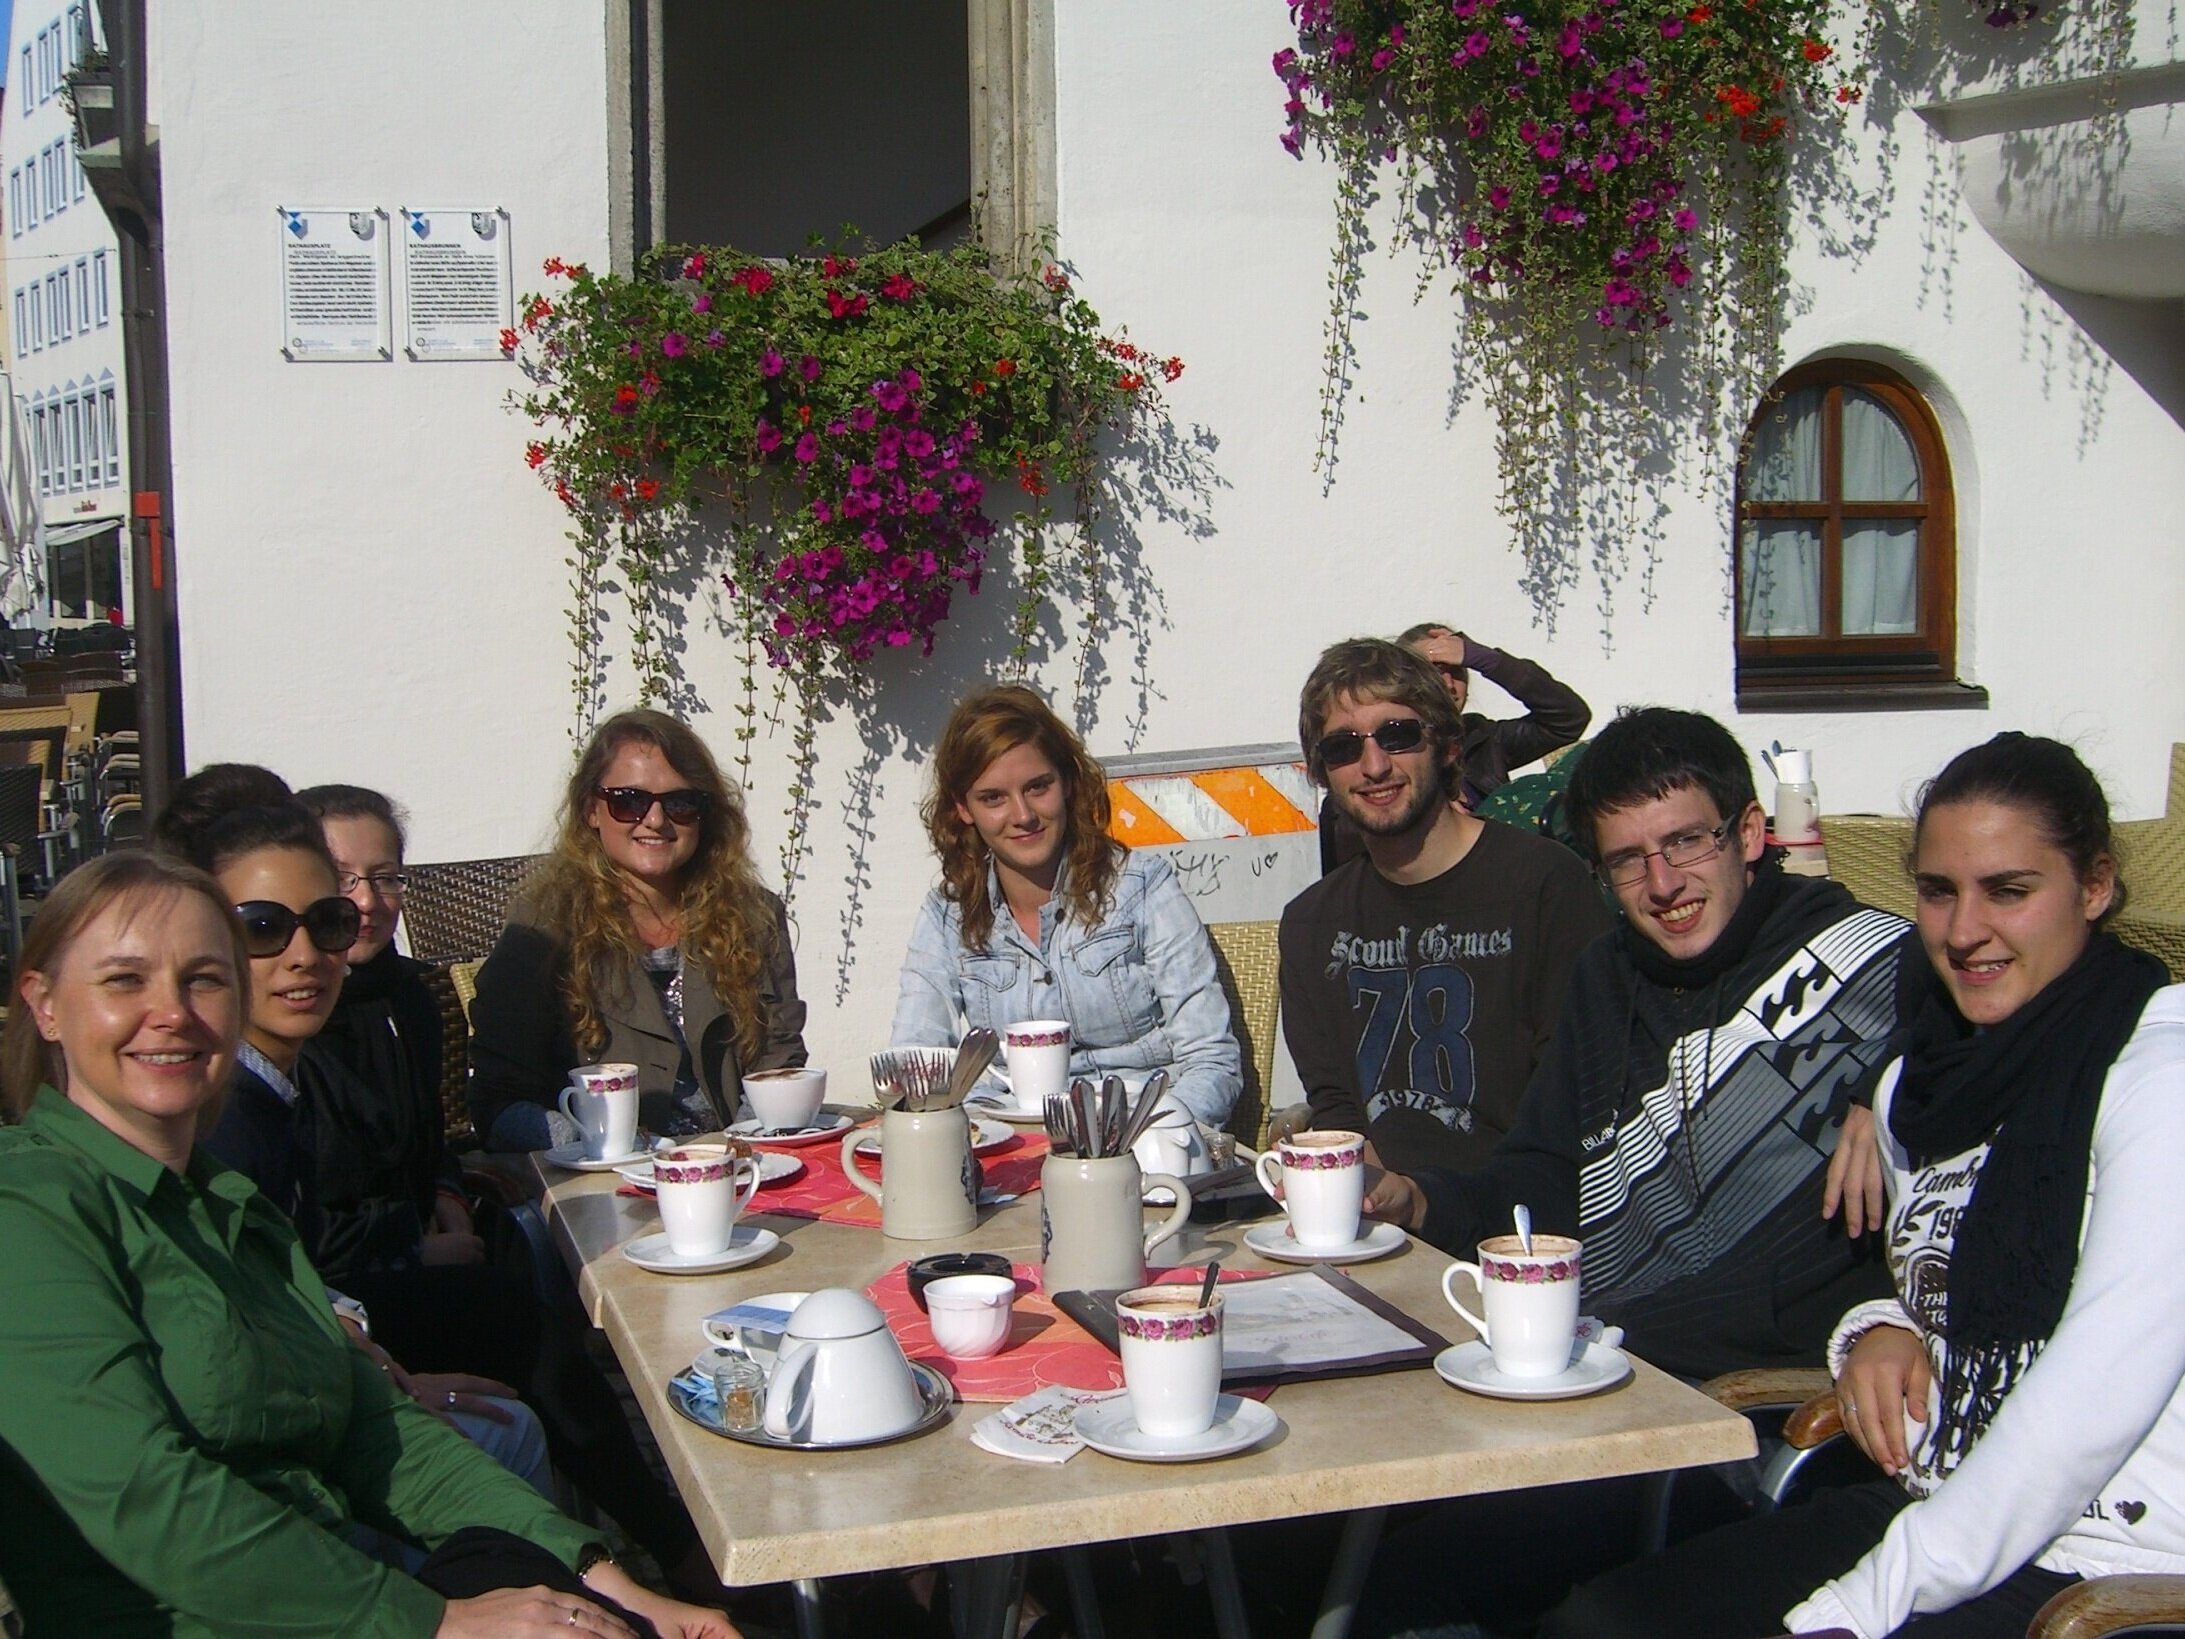 a great experience away from home - Kalina, Polen